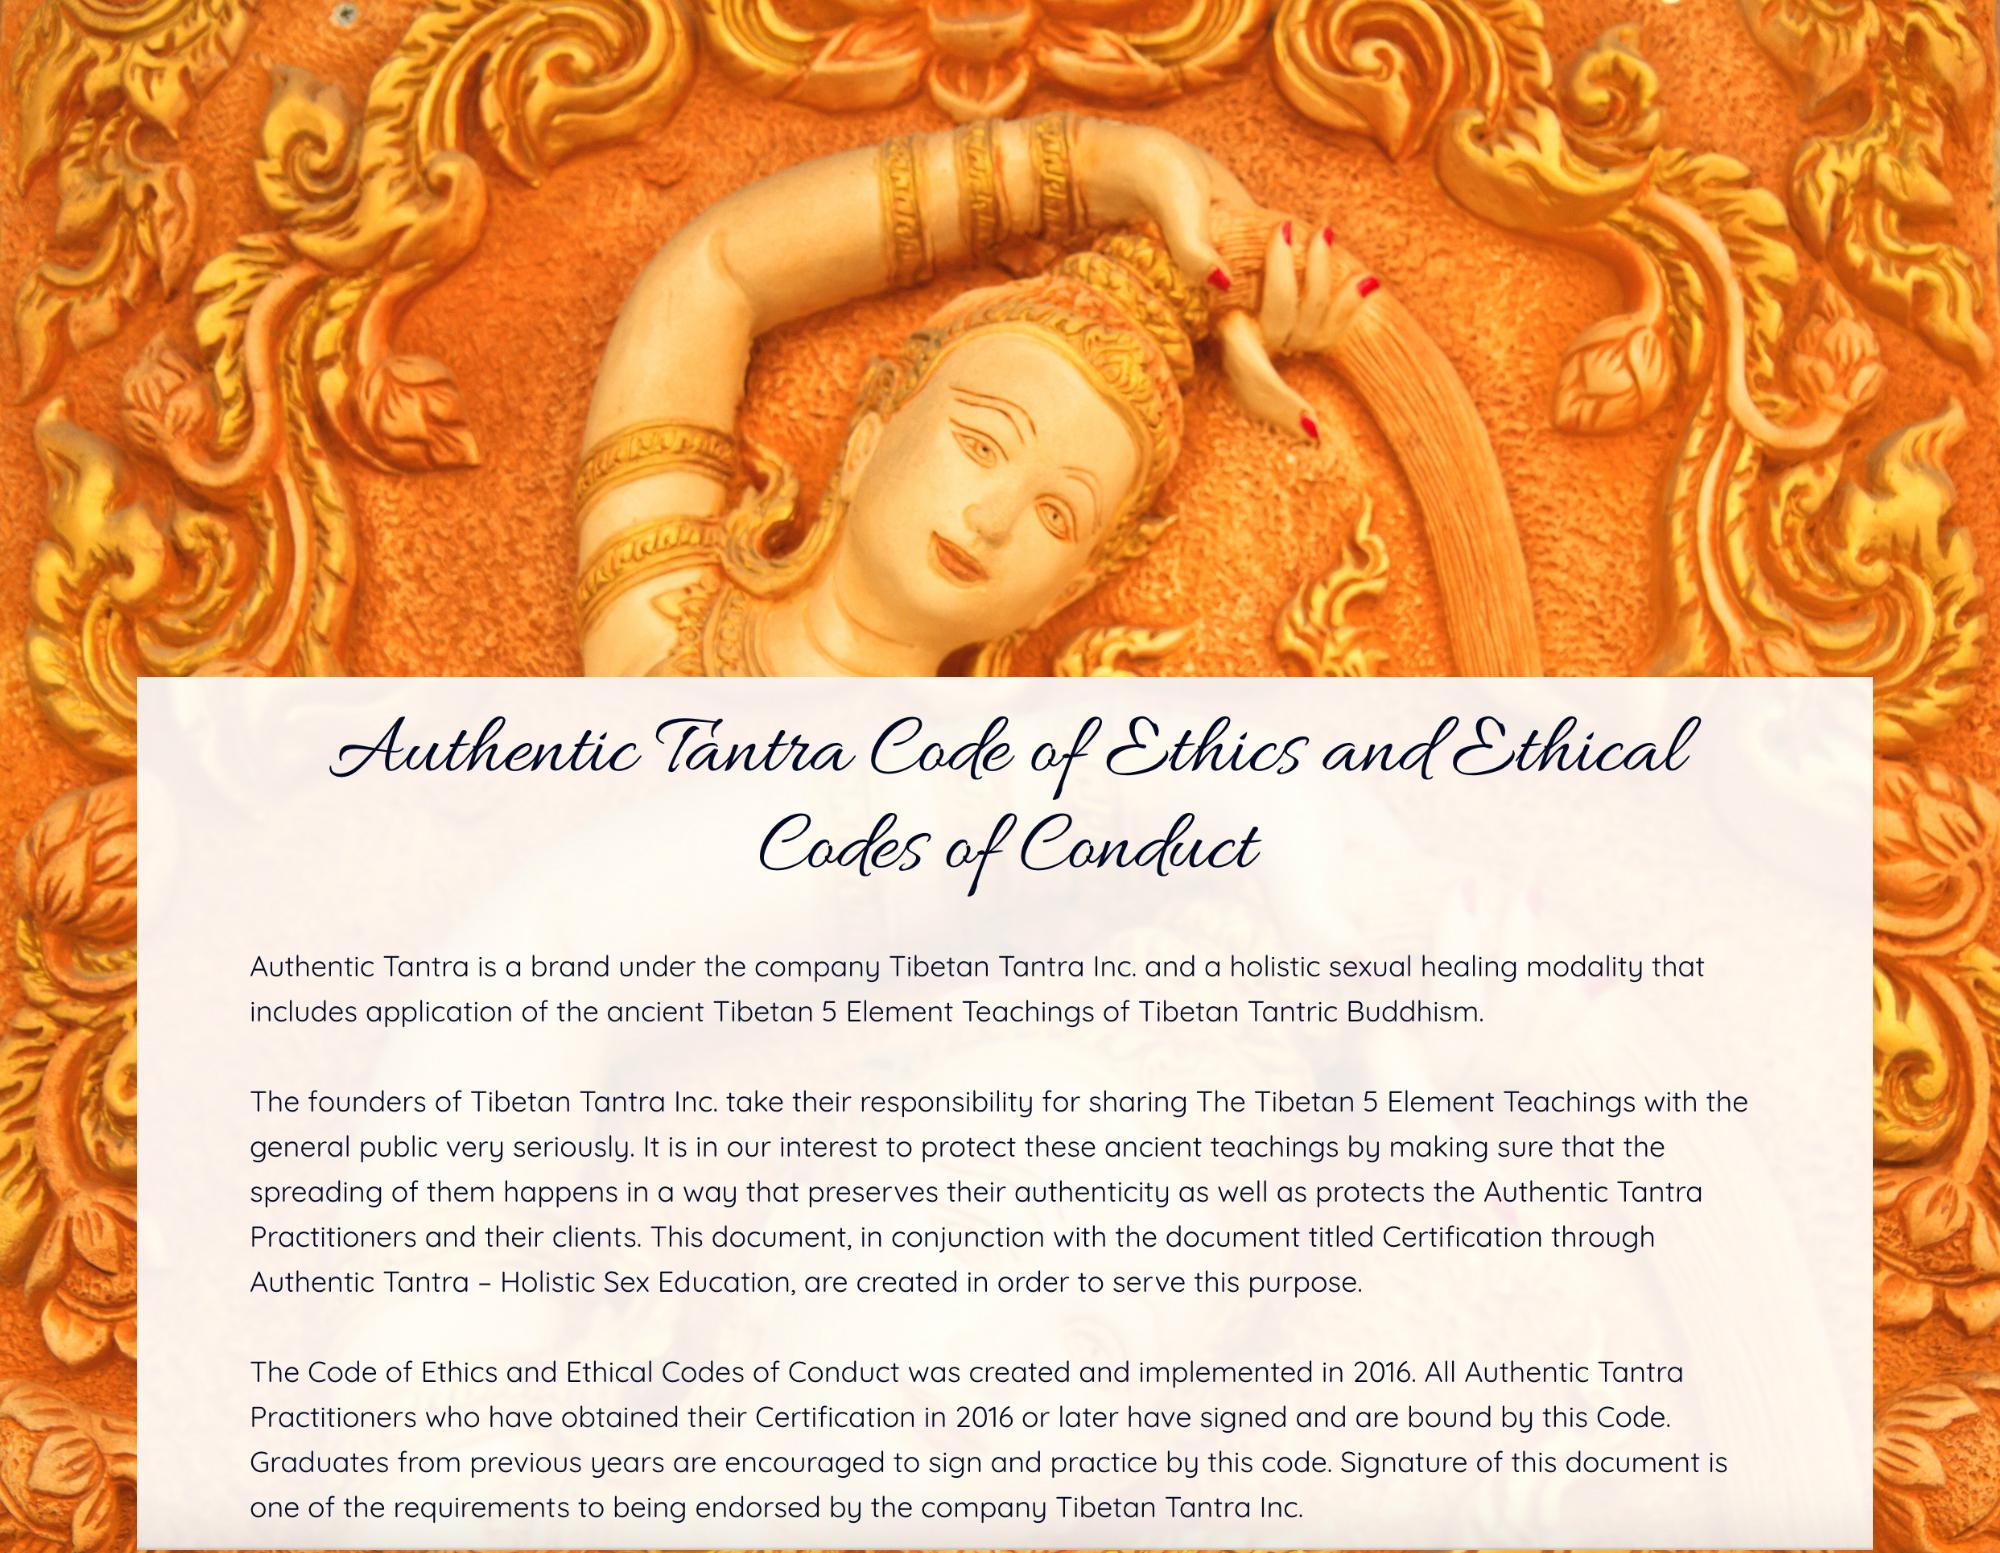 a reflection on the code of ethics and teachings of buddhism From the early days of buddhism, ethical conduct was as central to the path as meditation, study, and contemplation  to adhere to a code of conduct and the laws .